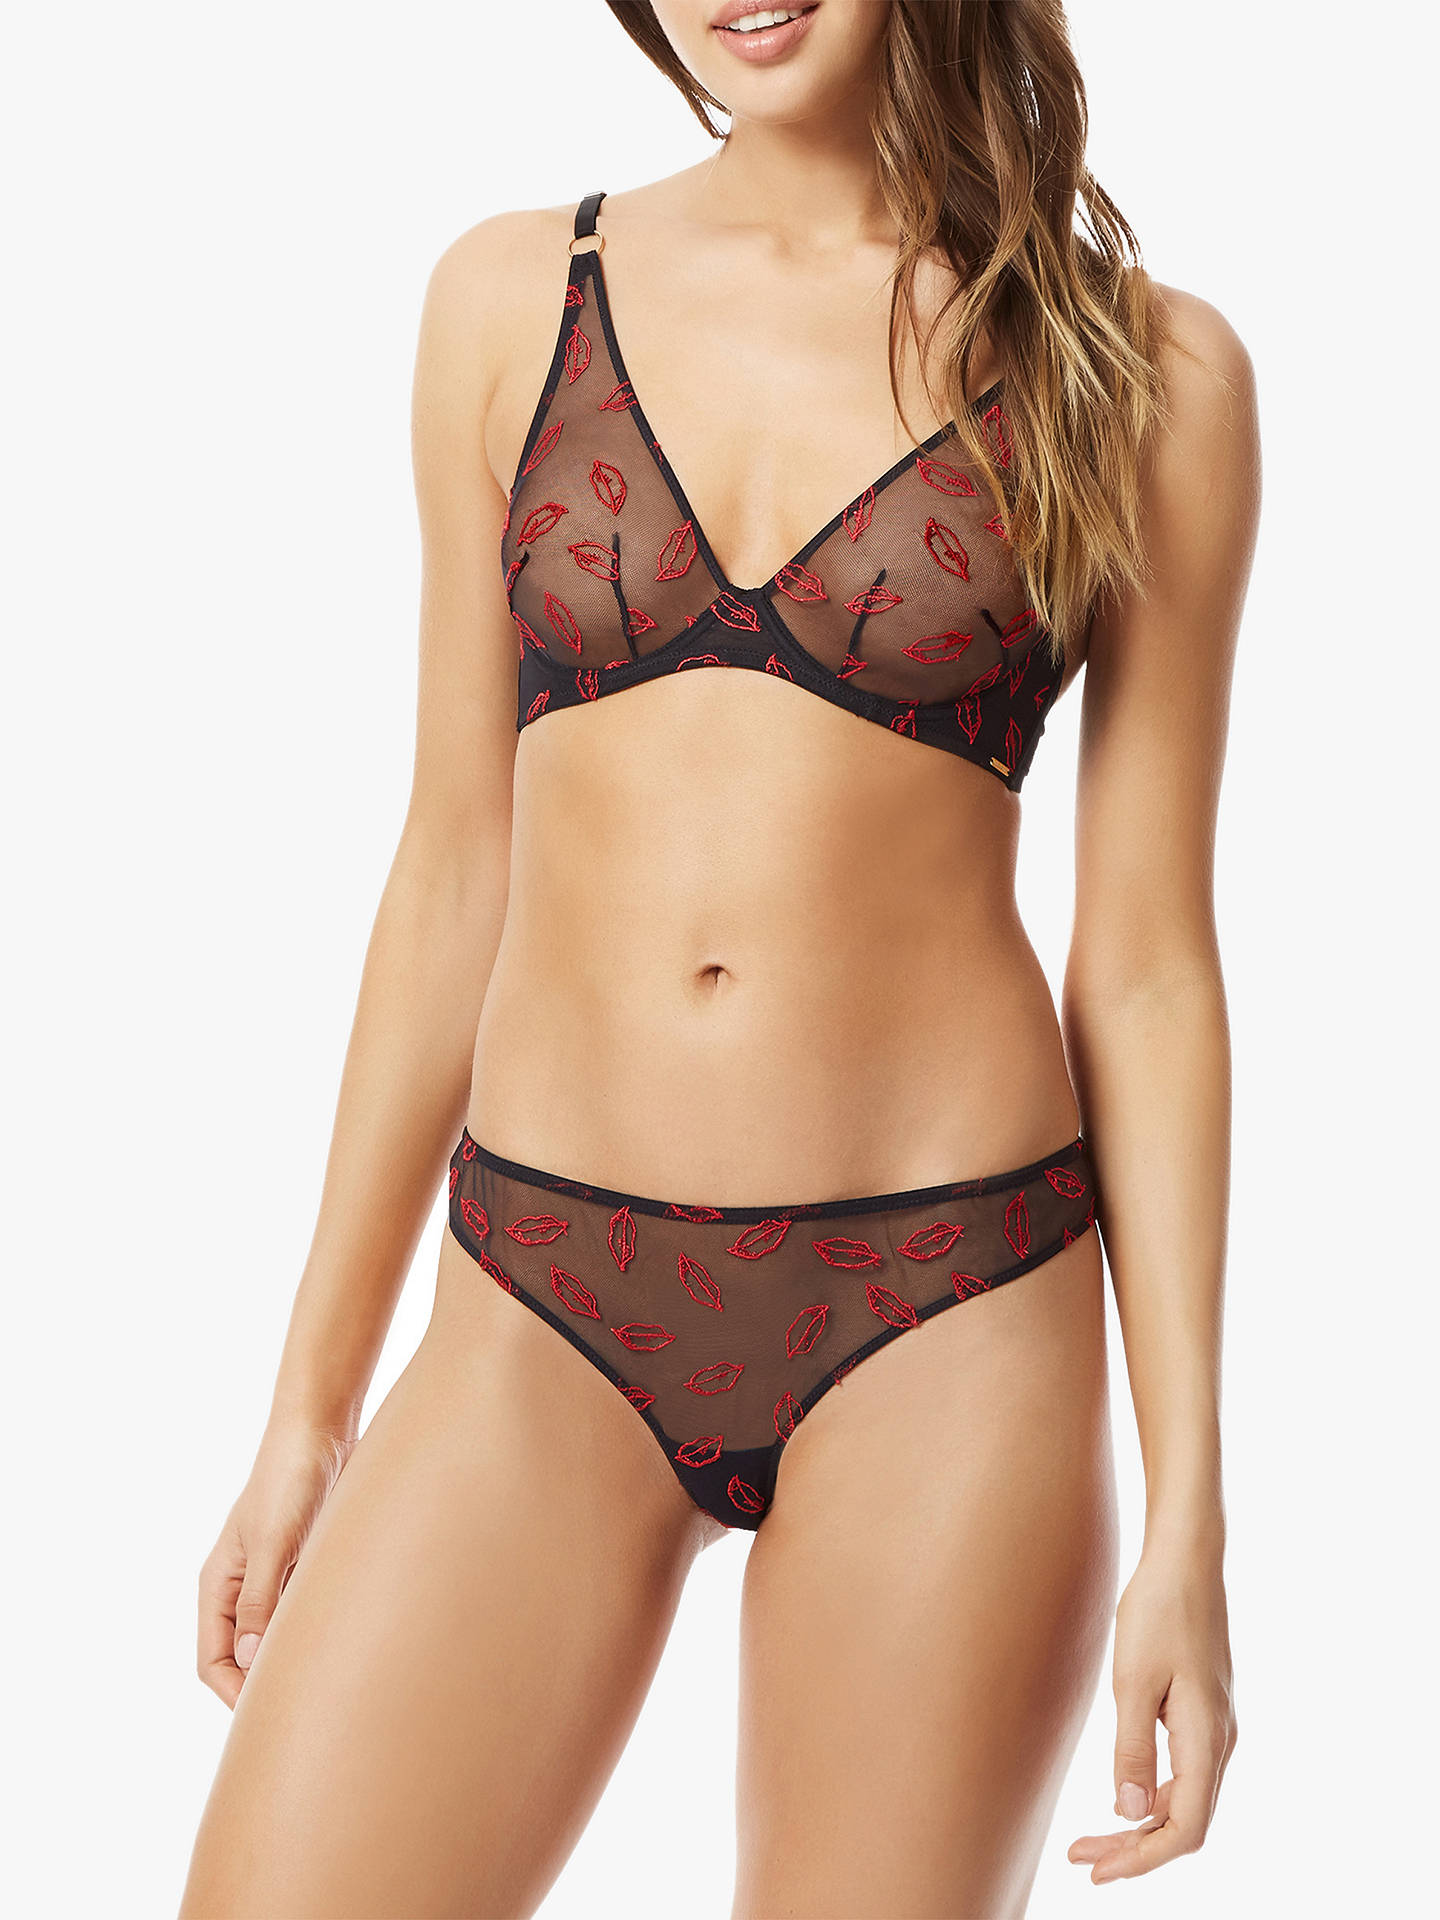 Buy Bluebella Willa Thong, Black/Red, 8 Online at johnlewis.com